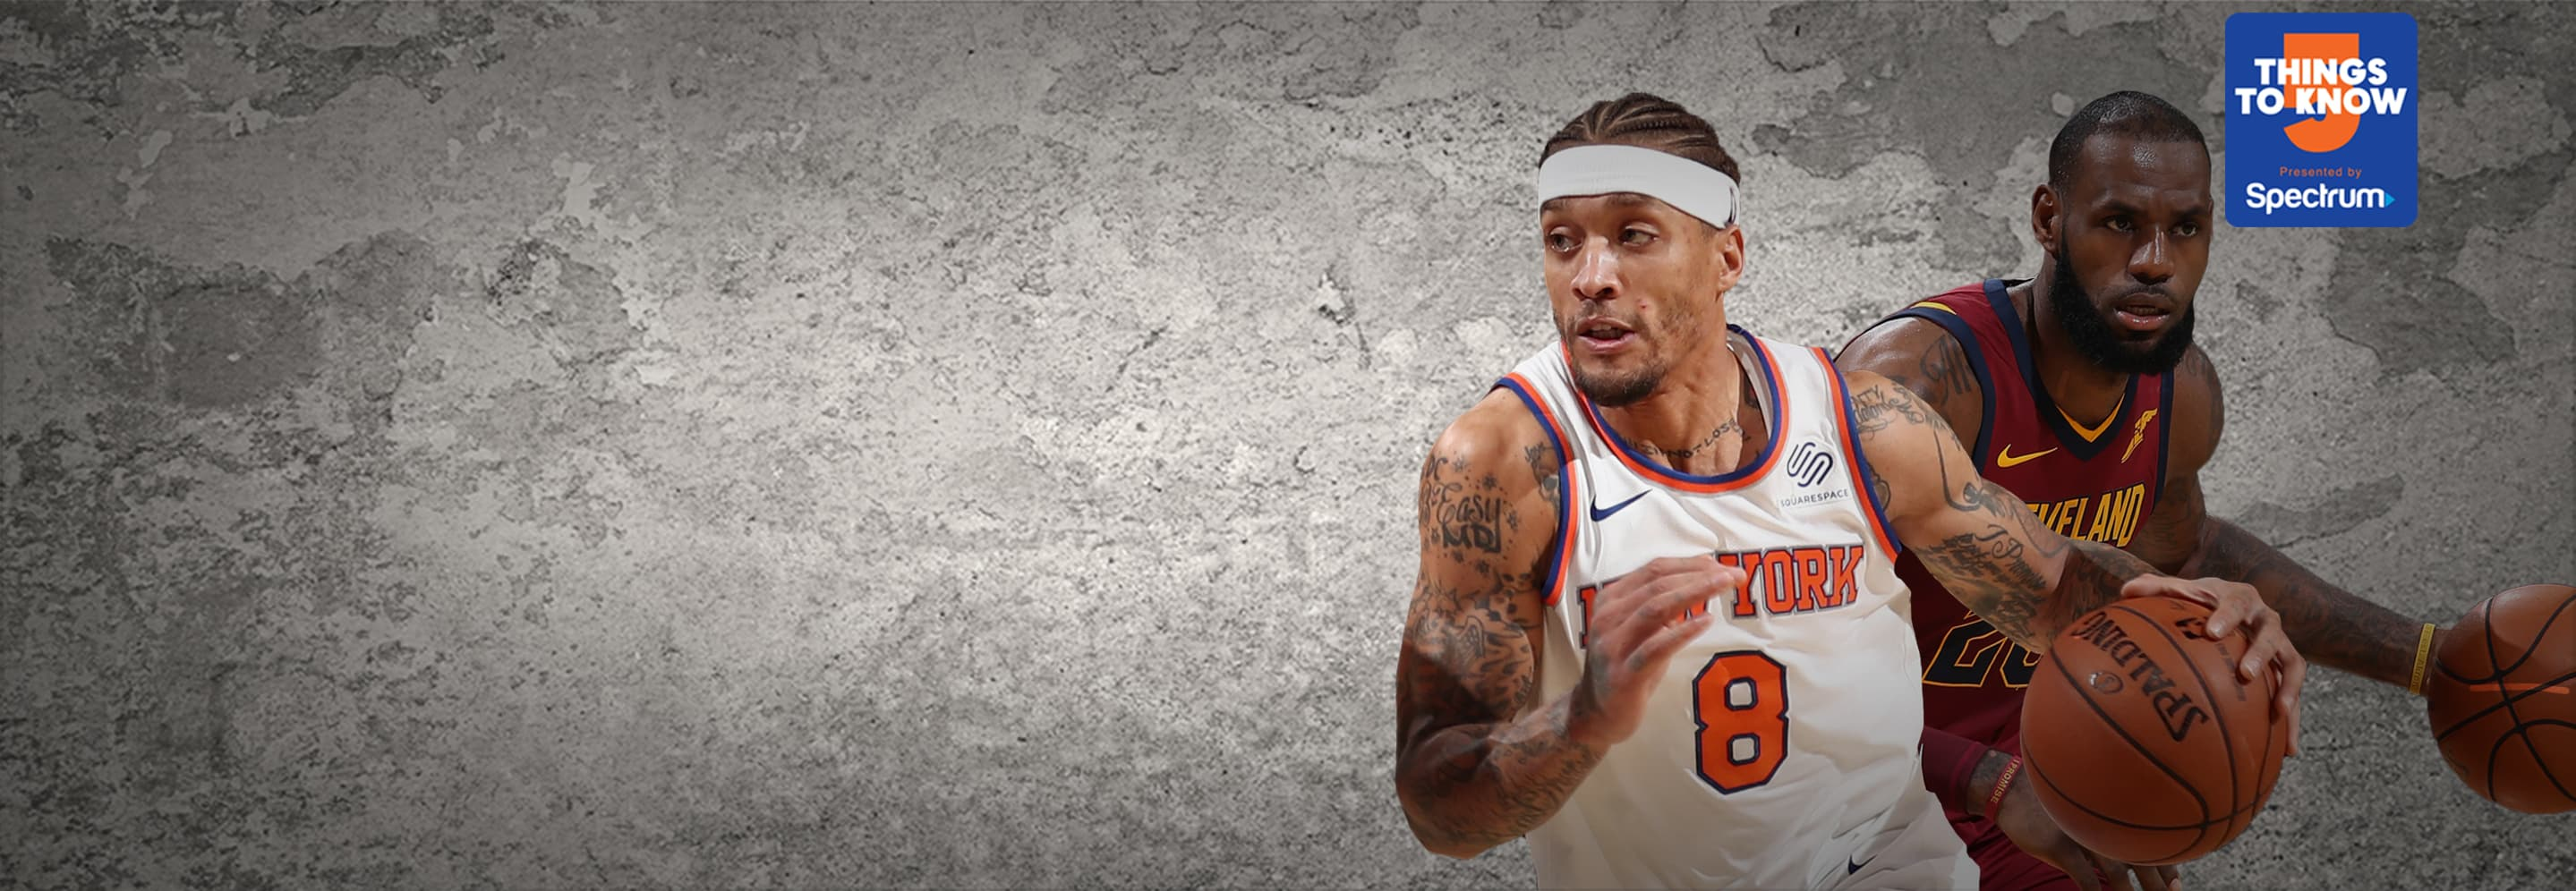 Knicks Take On Cavs in Final Home Game of the Season